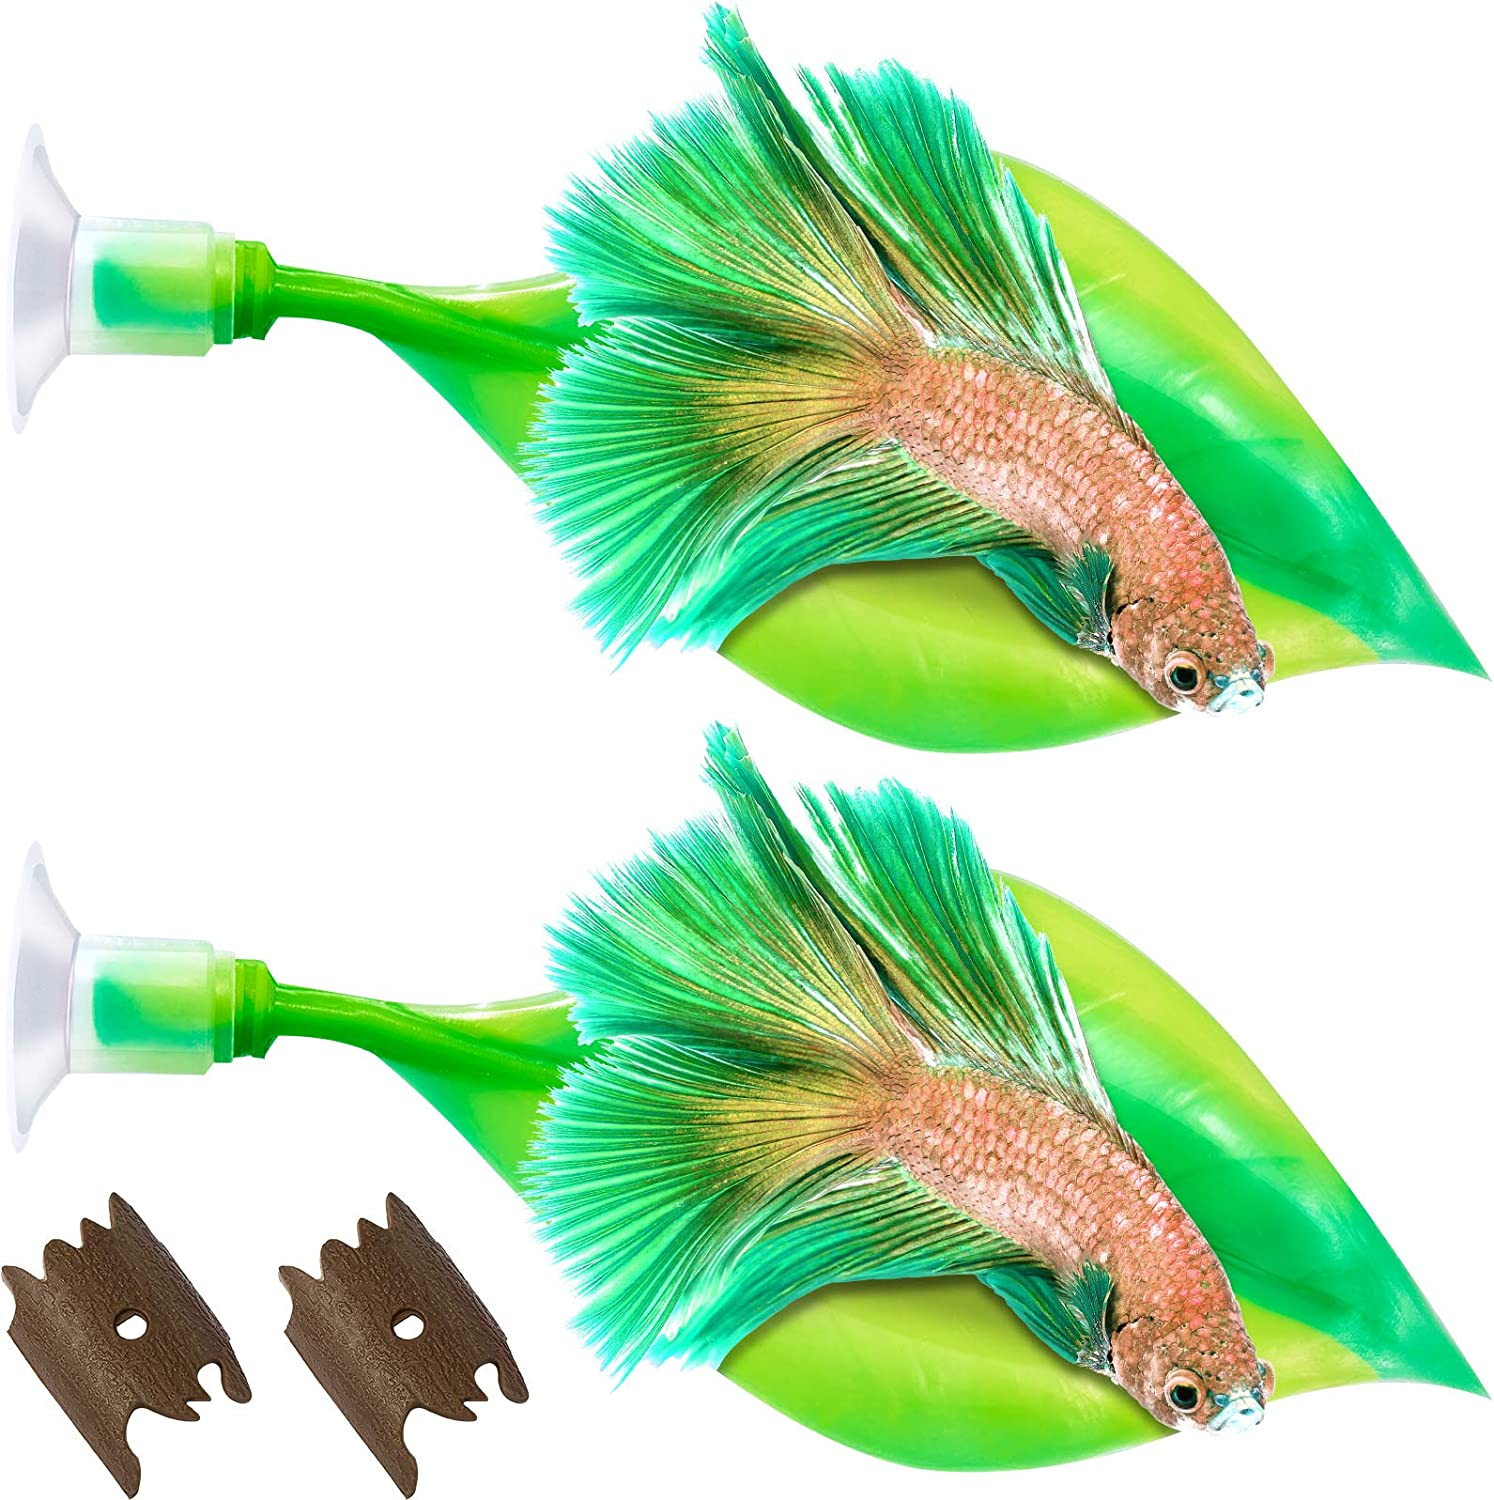 WILLBOND 2 Pieces Silicone Betta Bed Leaf Hammock for Betta Fish, Betta Fish Bed, Practical Resting Spot, No BPA, Comfortable and Safe